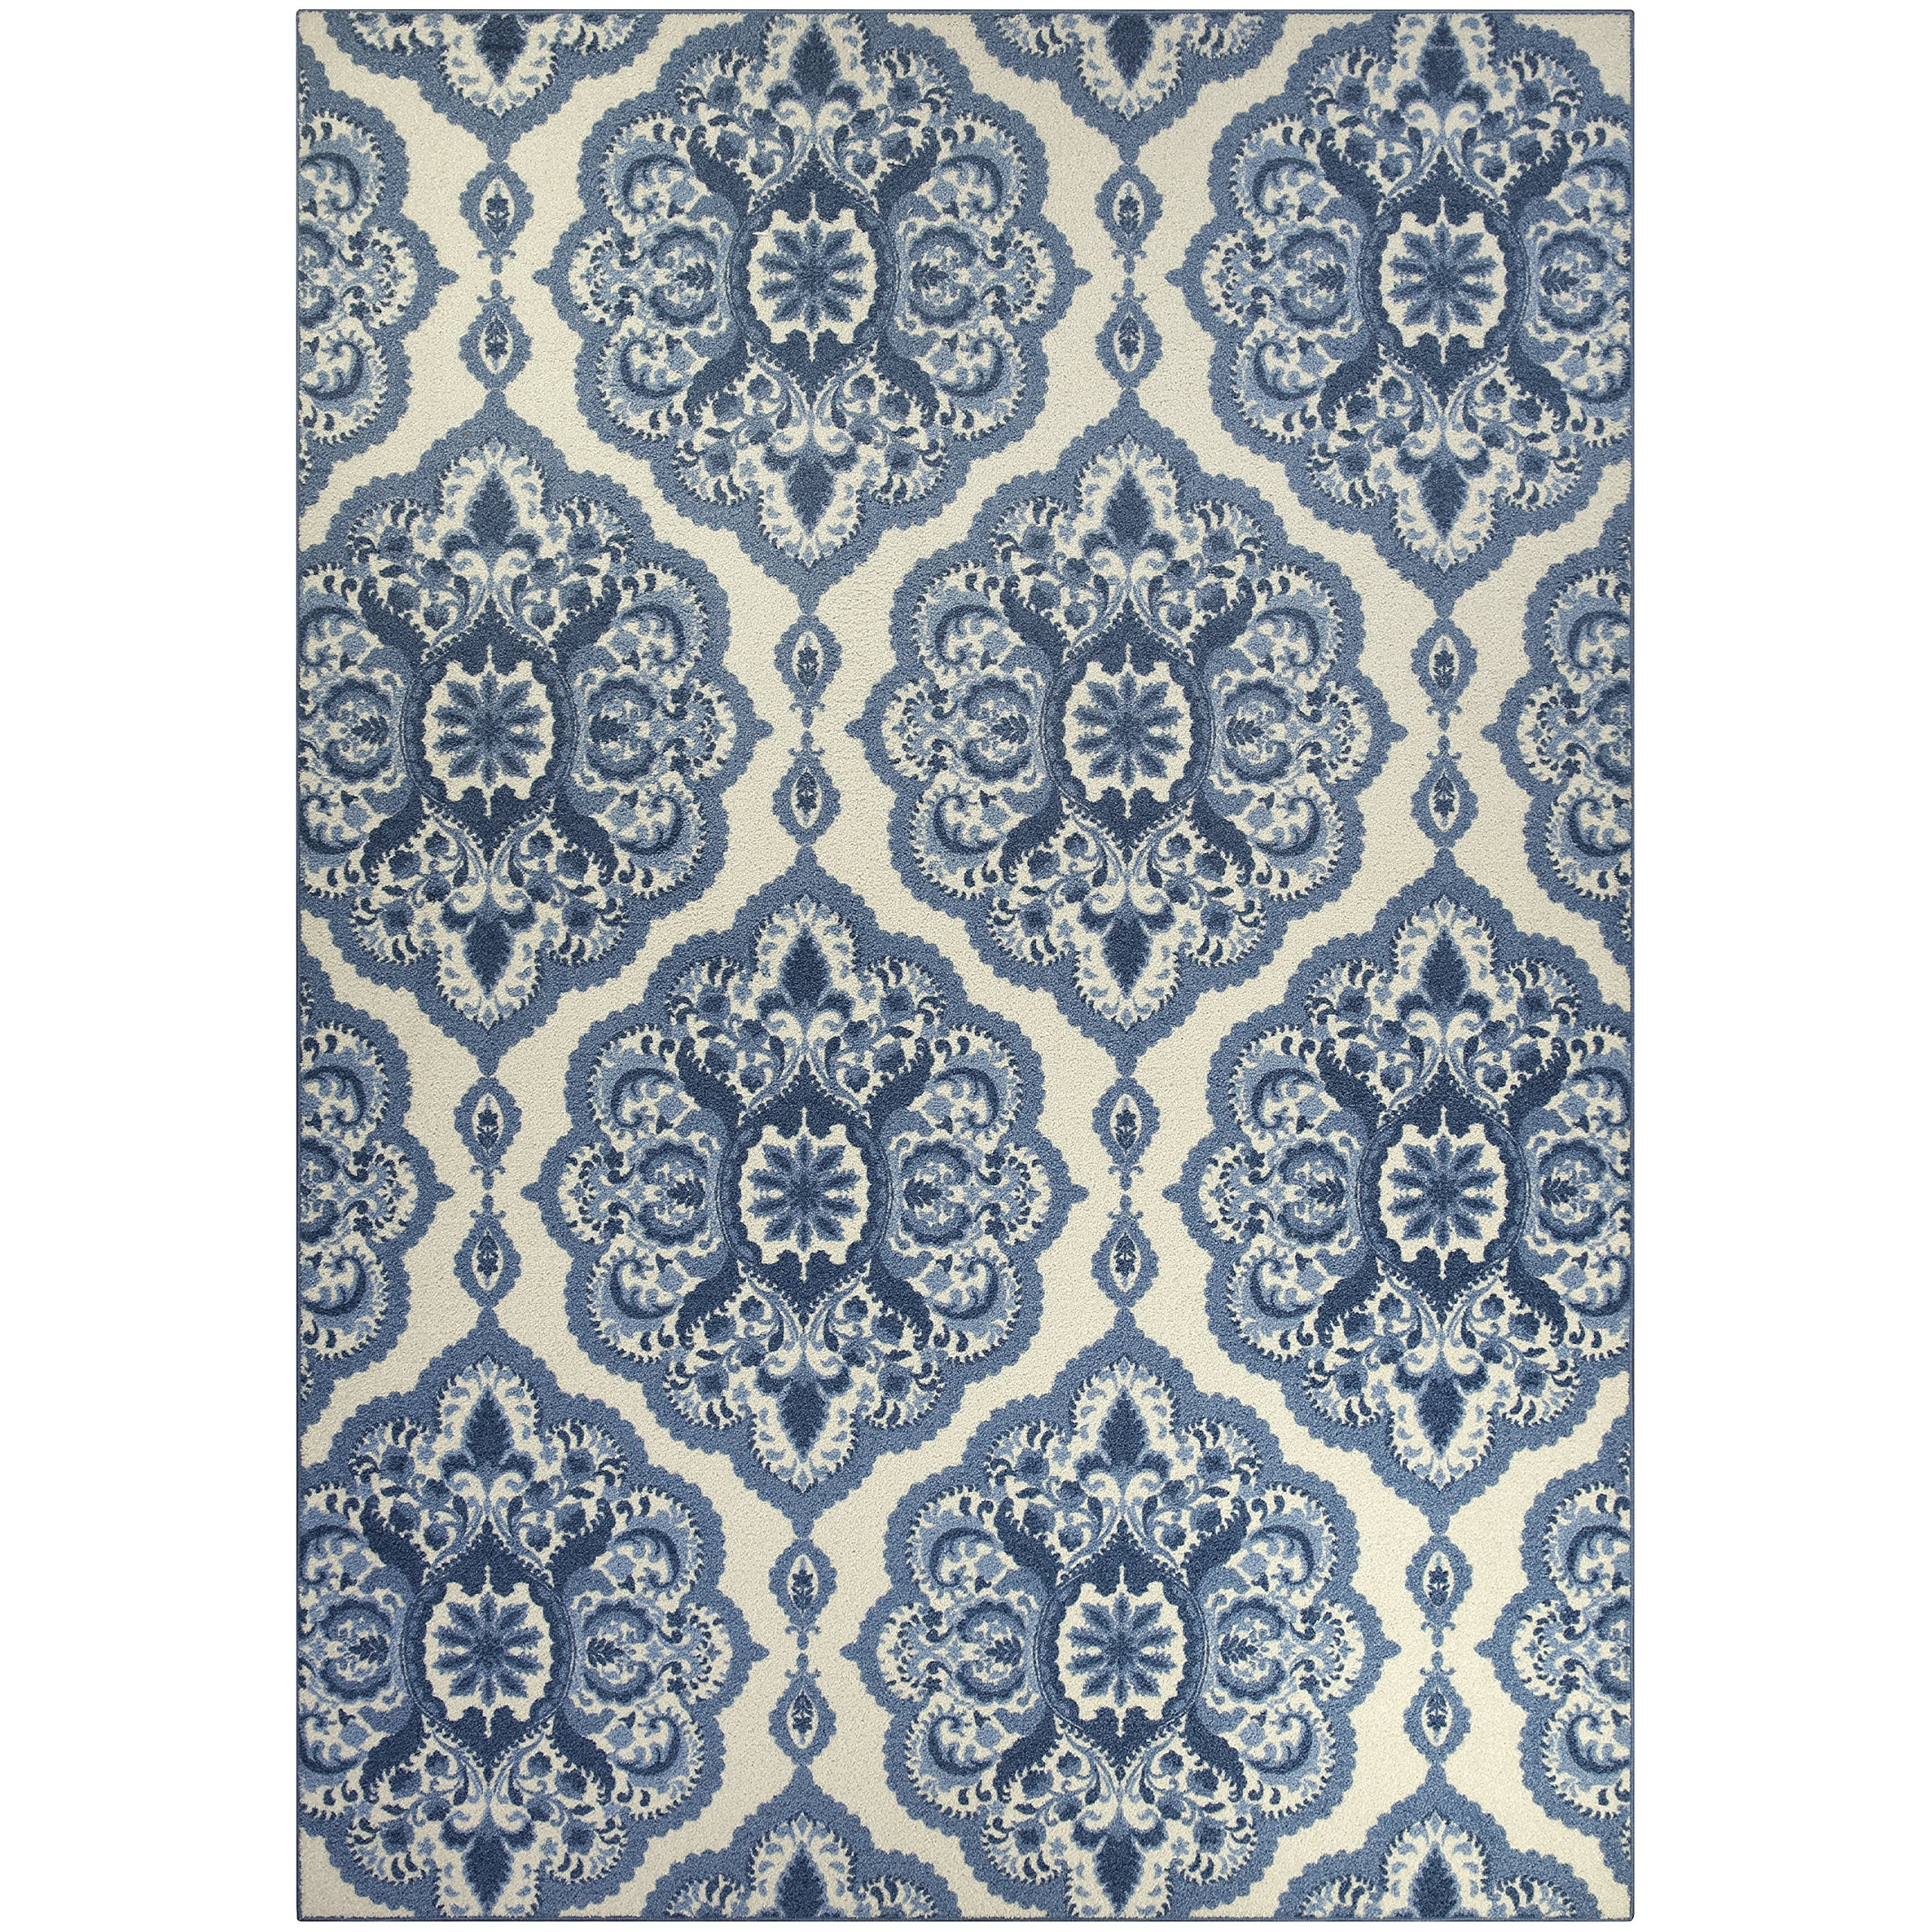 Area Rugs, Maples Rugs [Made in USA][Vivian] 7' x 10' Non Slip Padded Large Rug for Living Room, Bedroom, and Dining Room - Blue